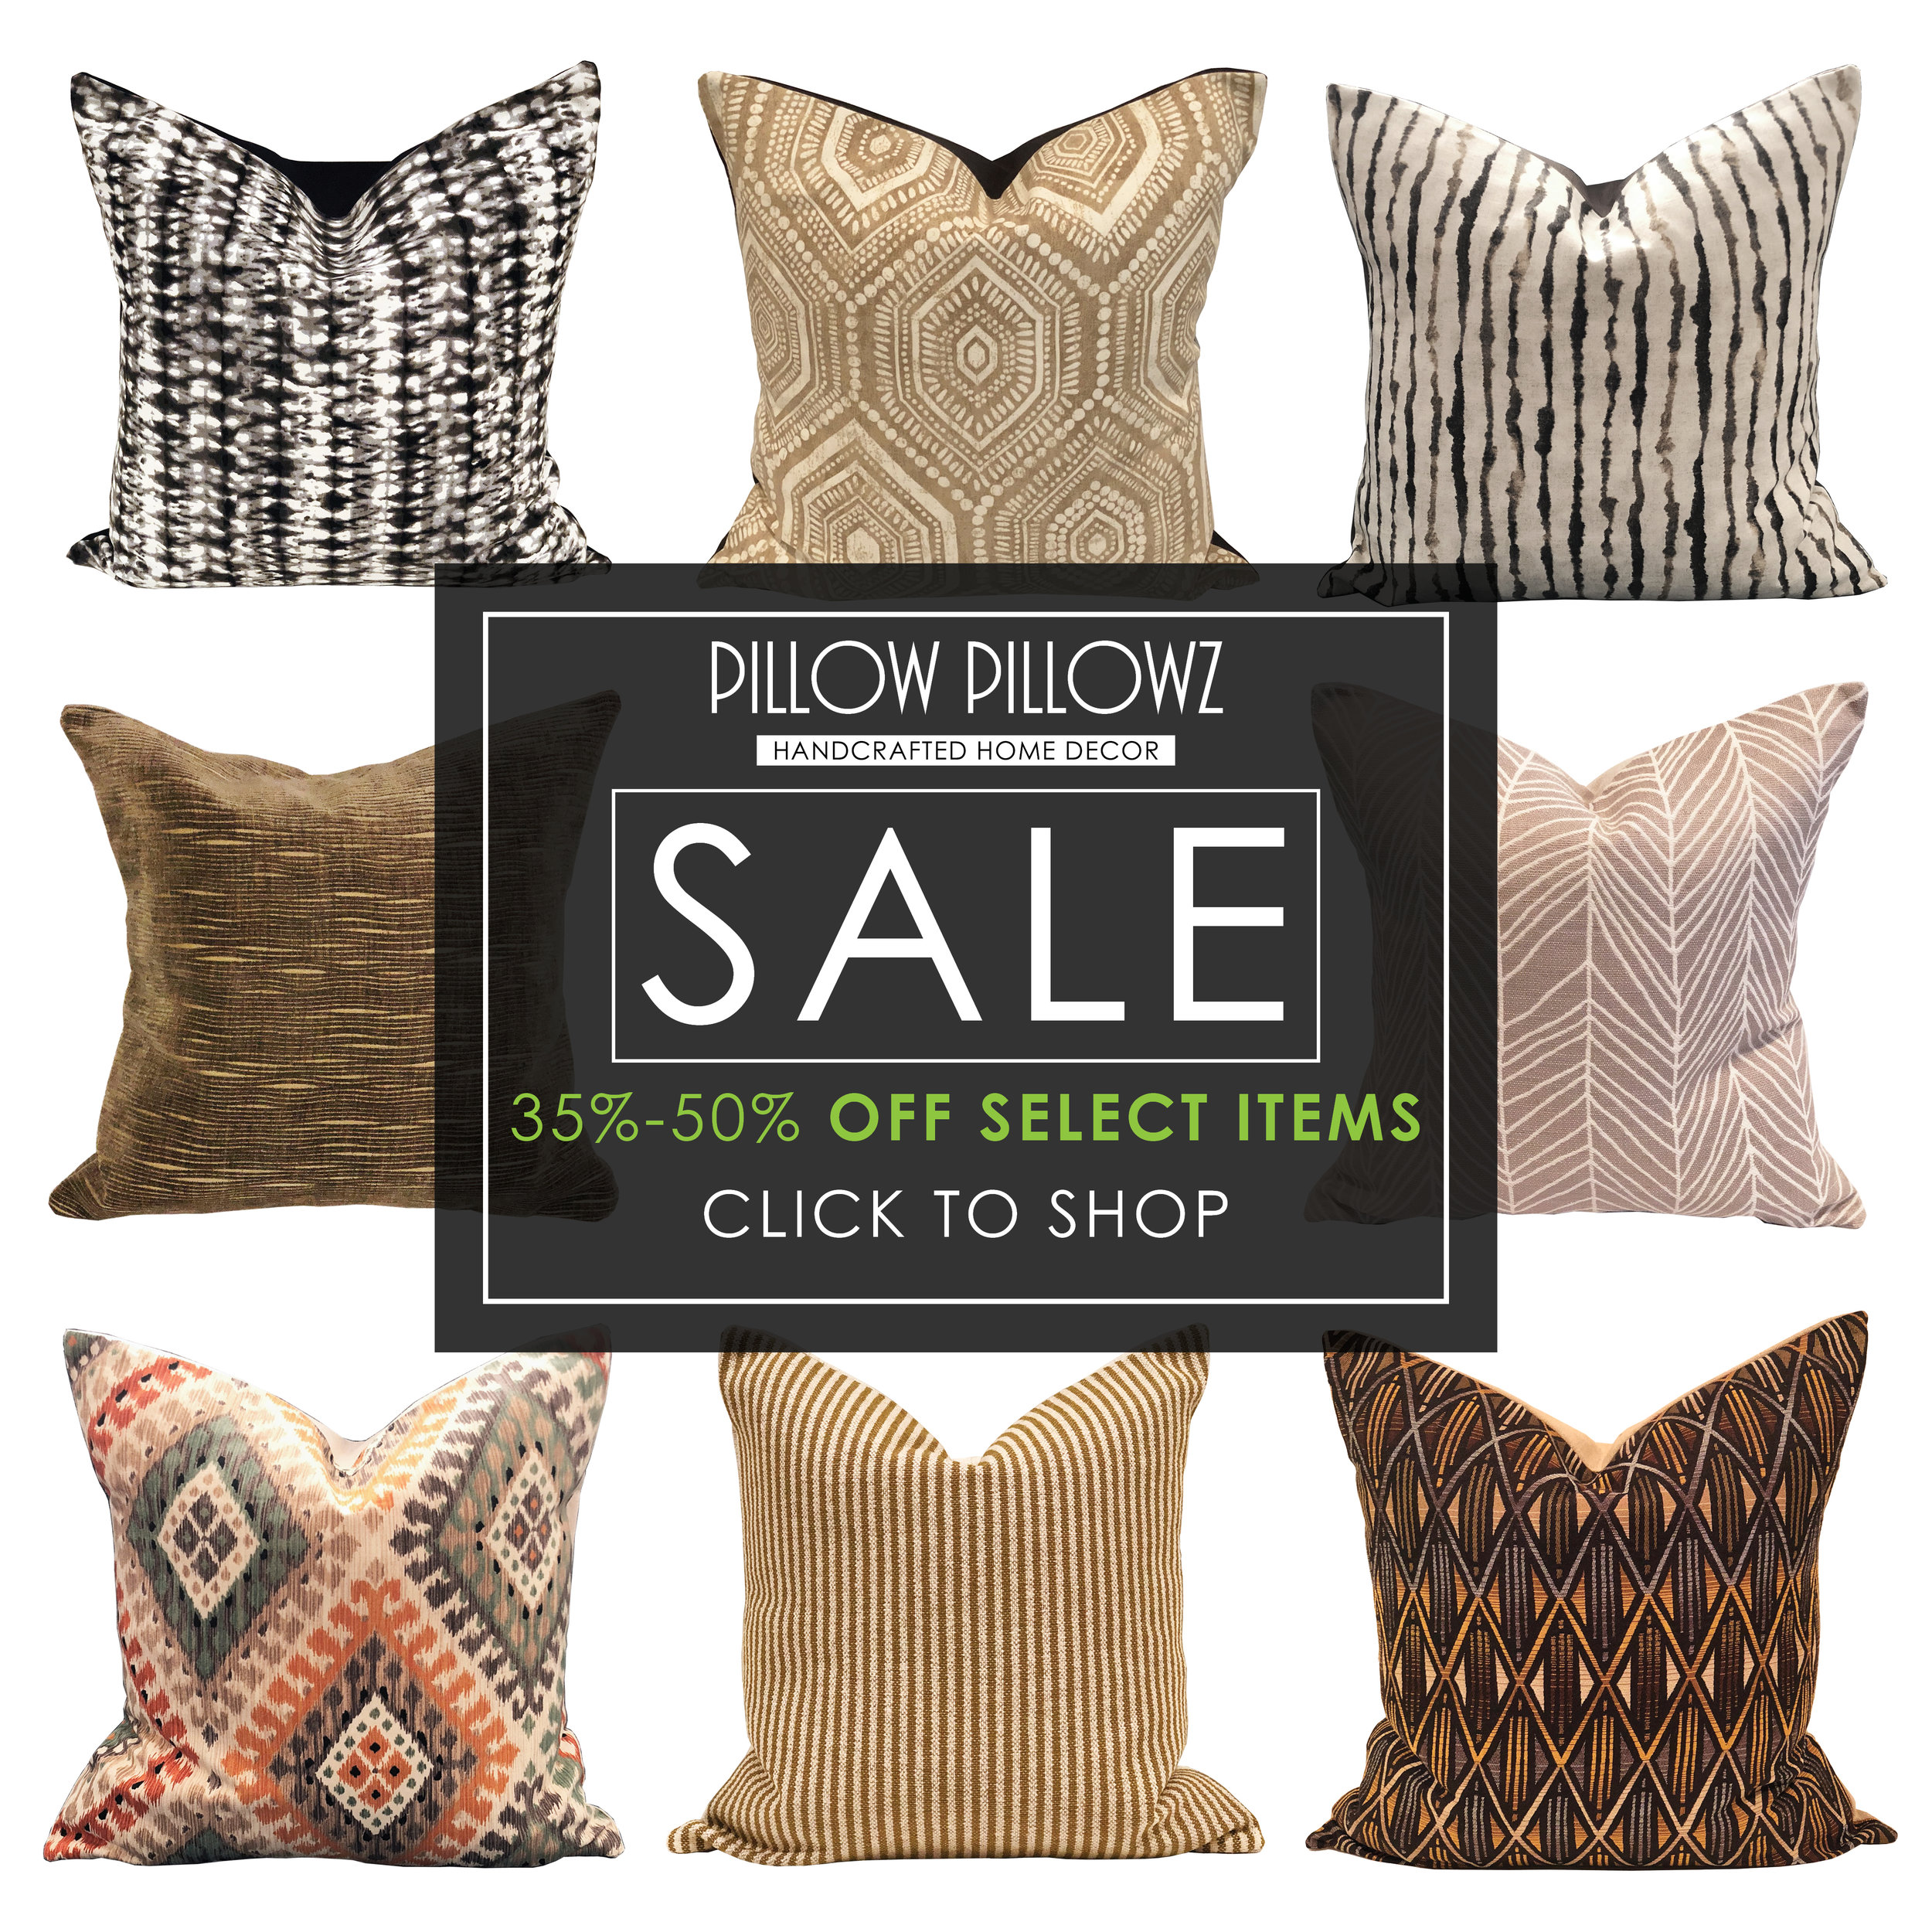 PILLOW PILLOWZ AD 2-2.jpg